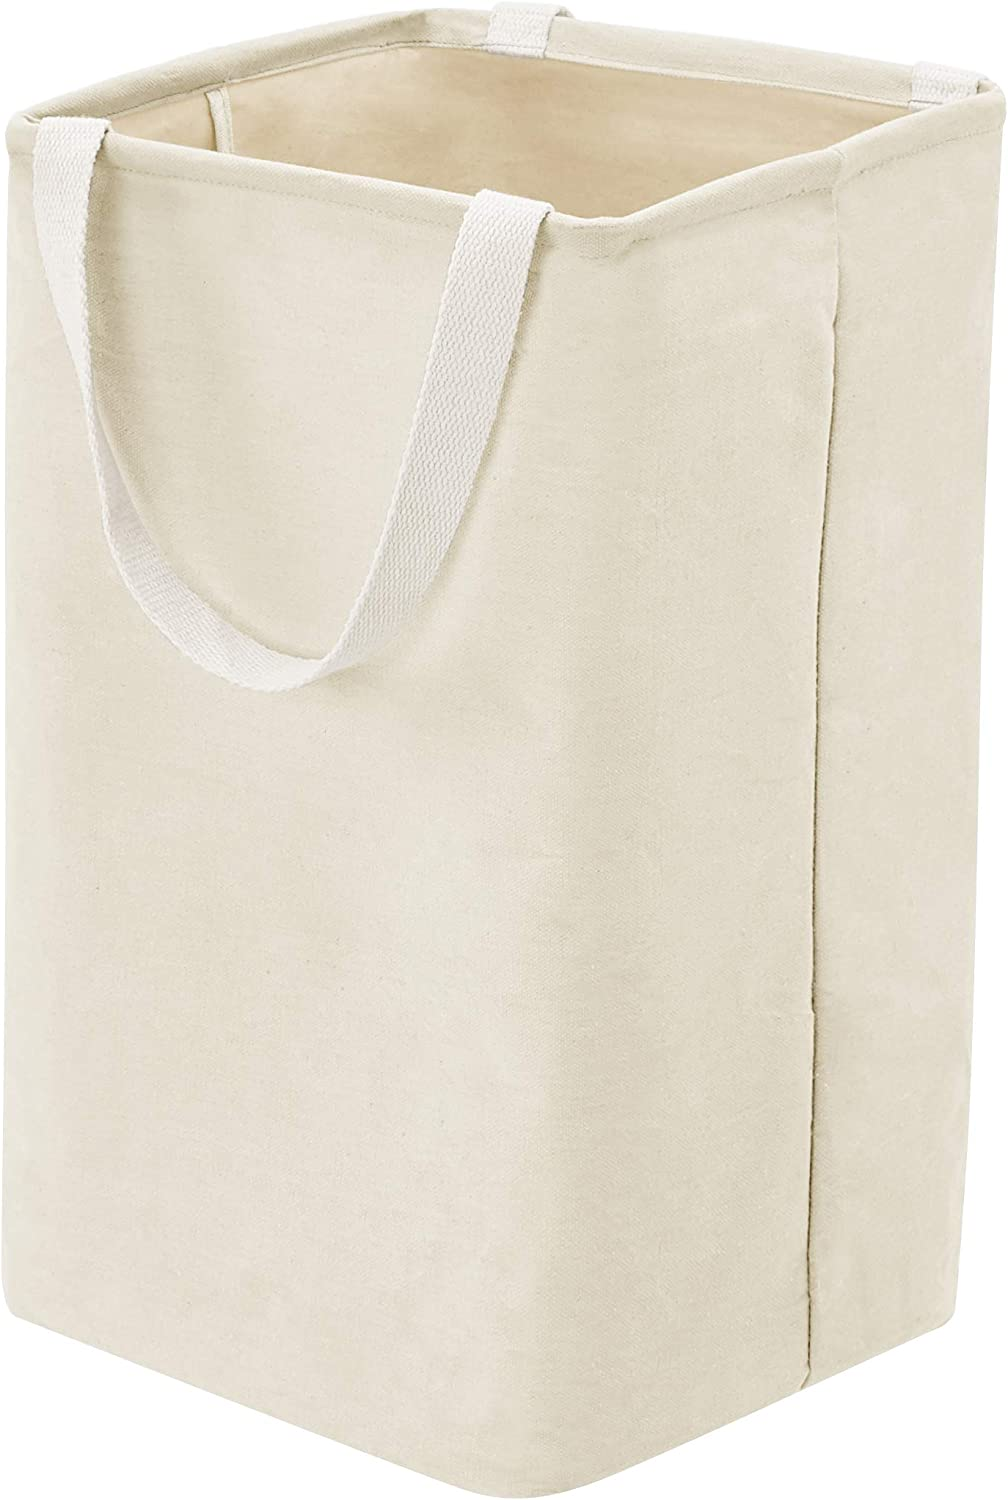 AmazonBasics Fabric Storage Bin Basket - Tall Cube, Natural